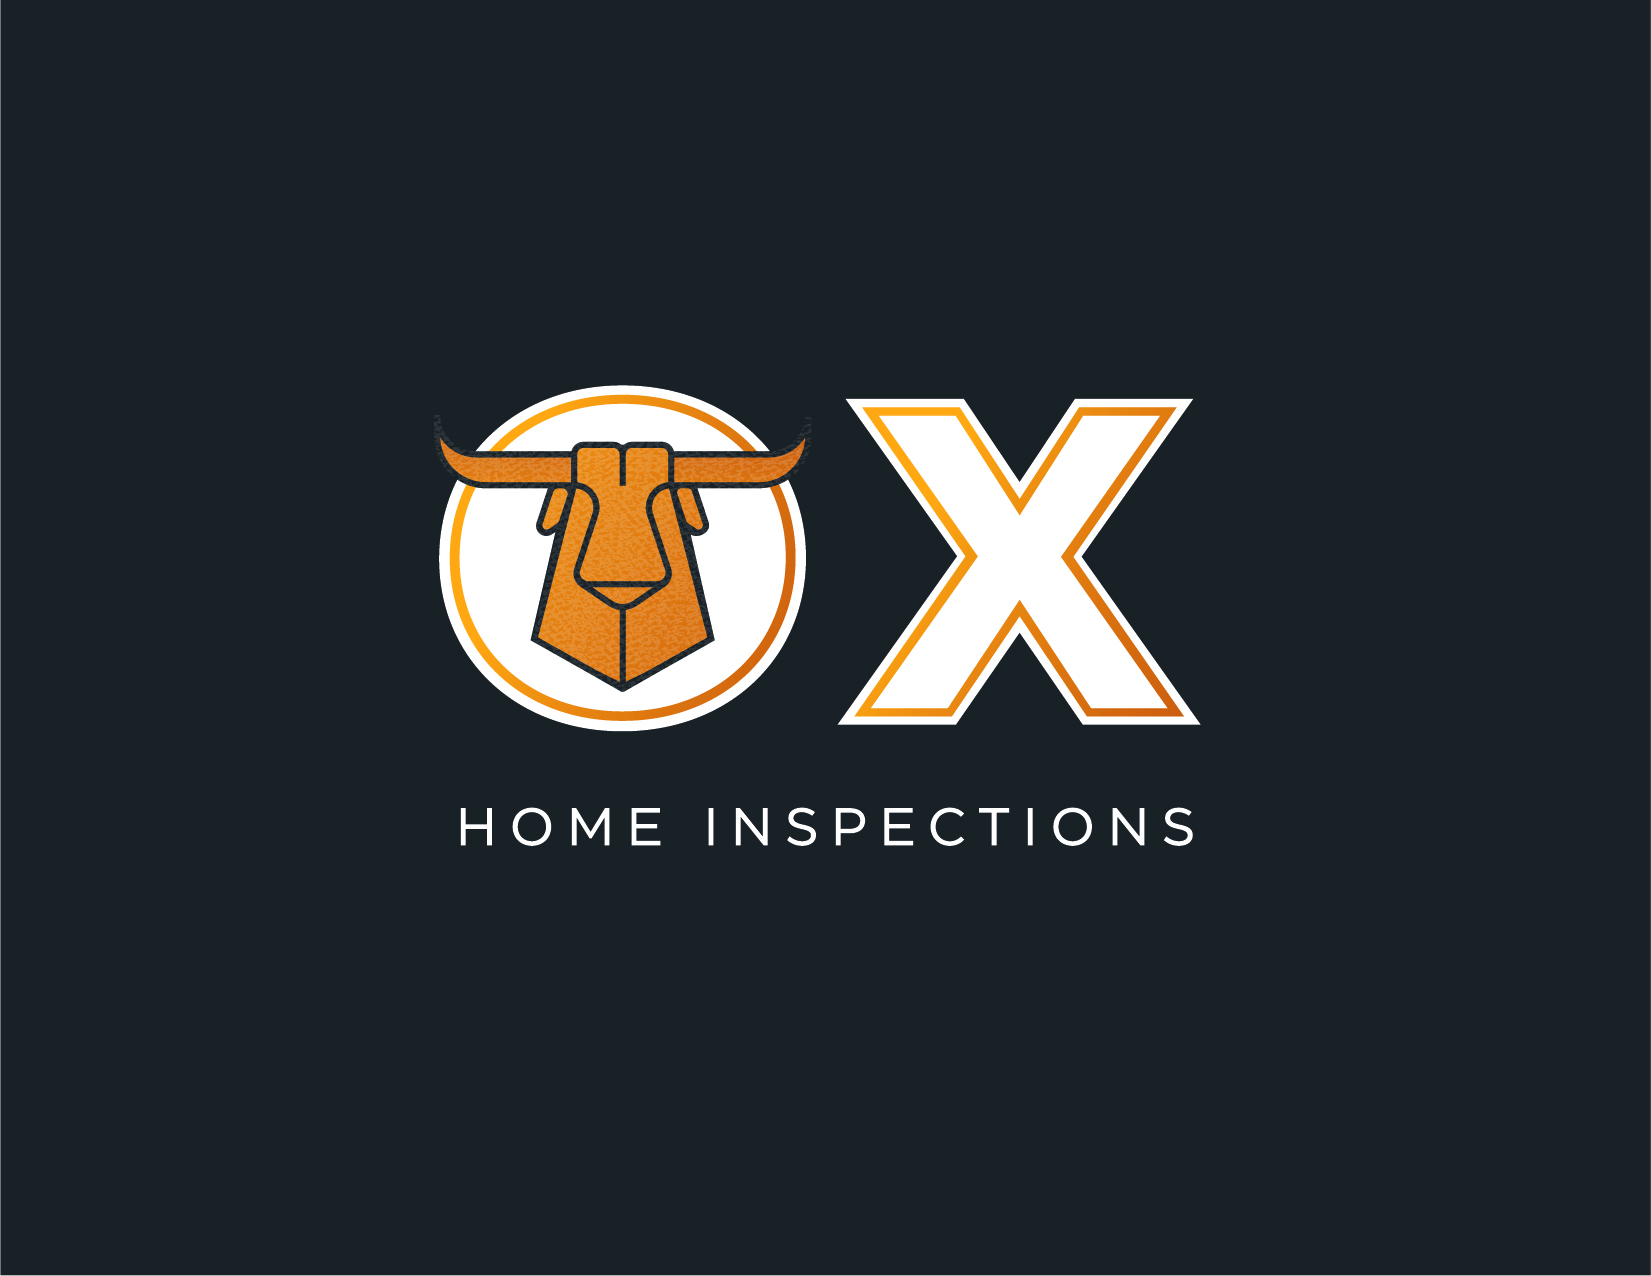 Ox home inspections final logo color black 01